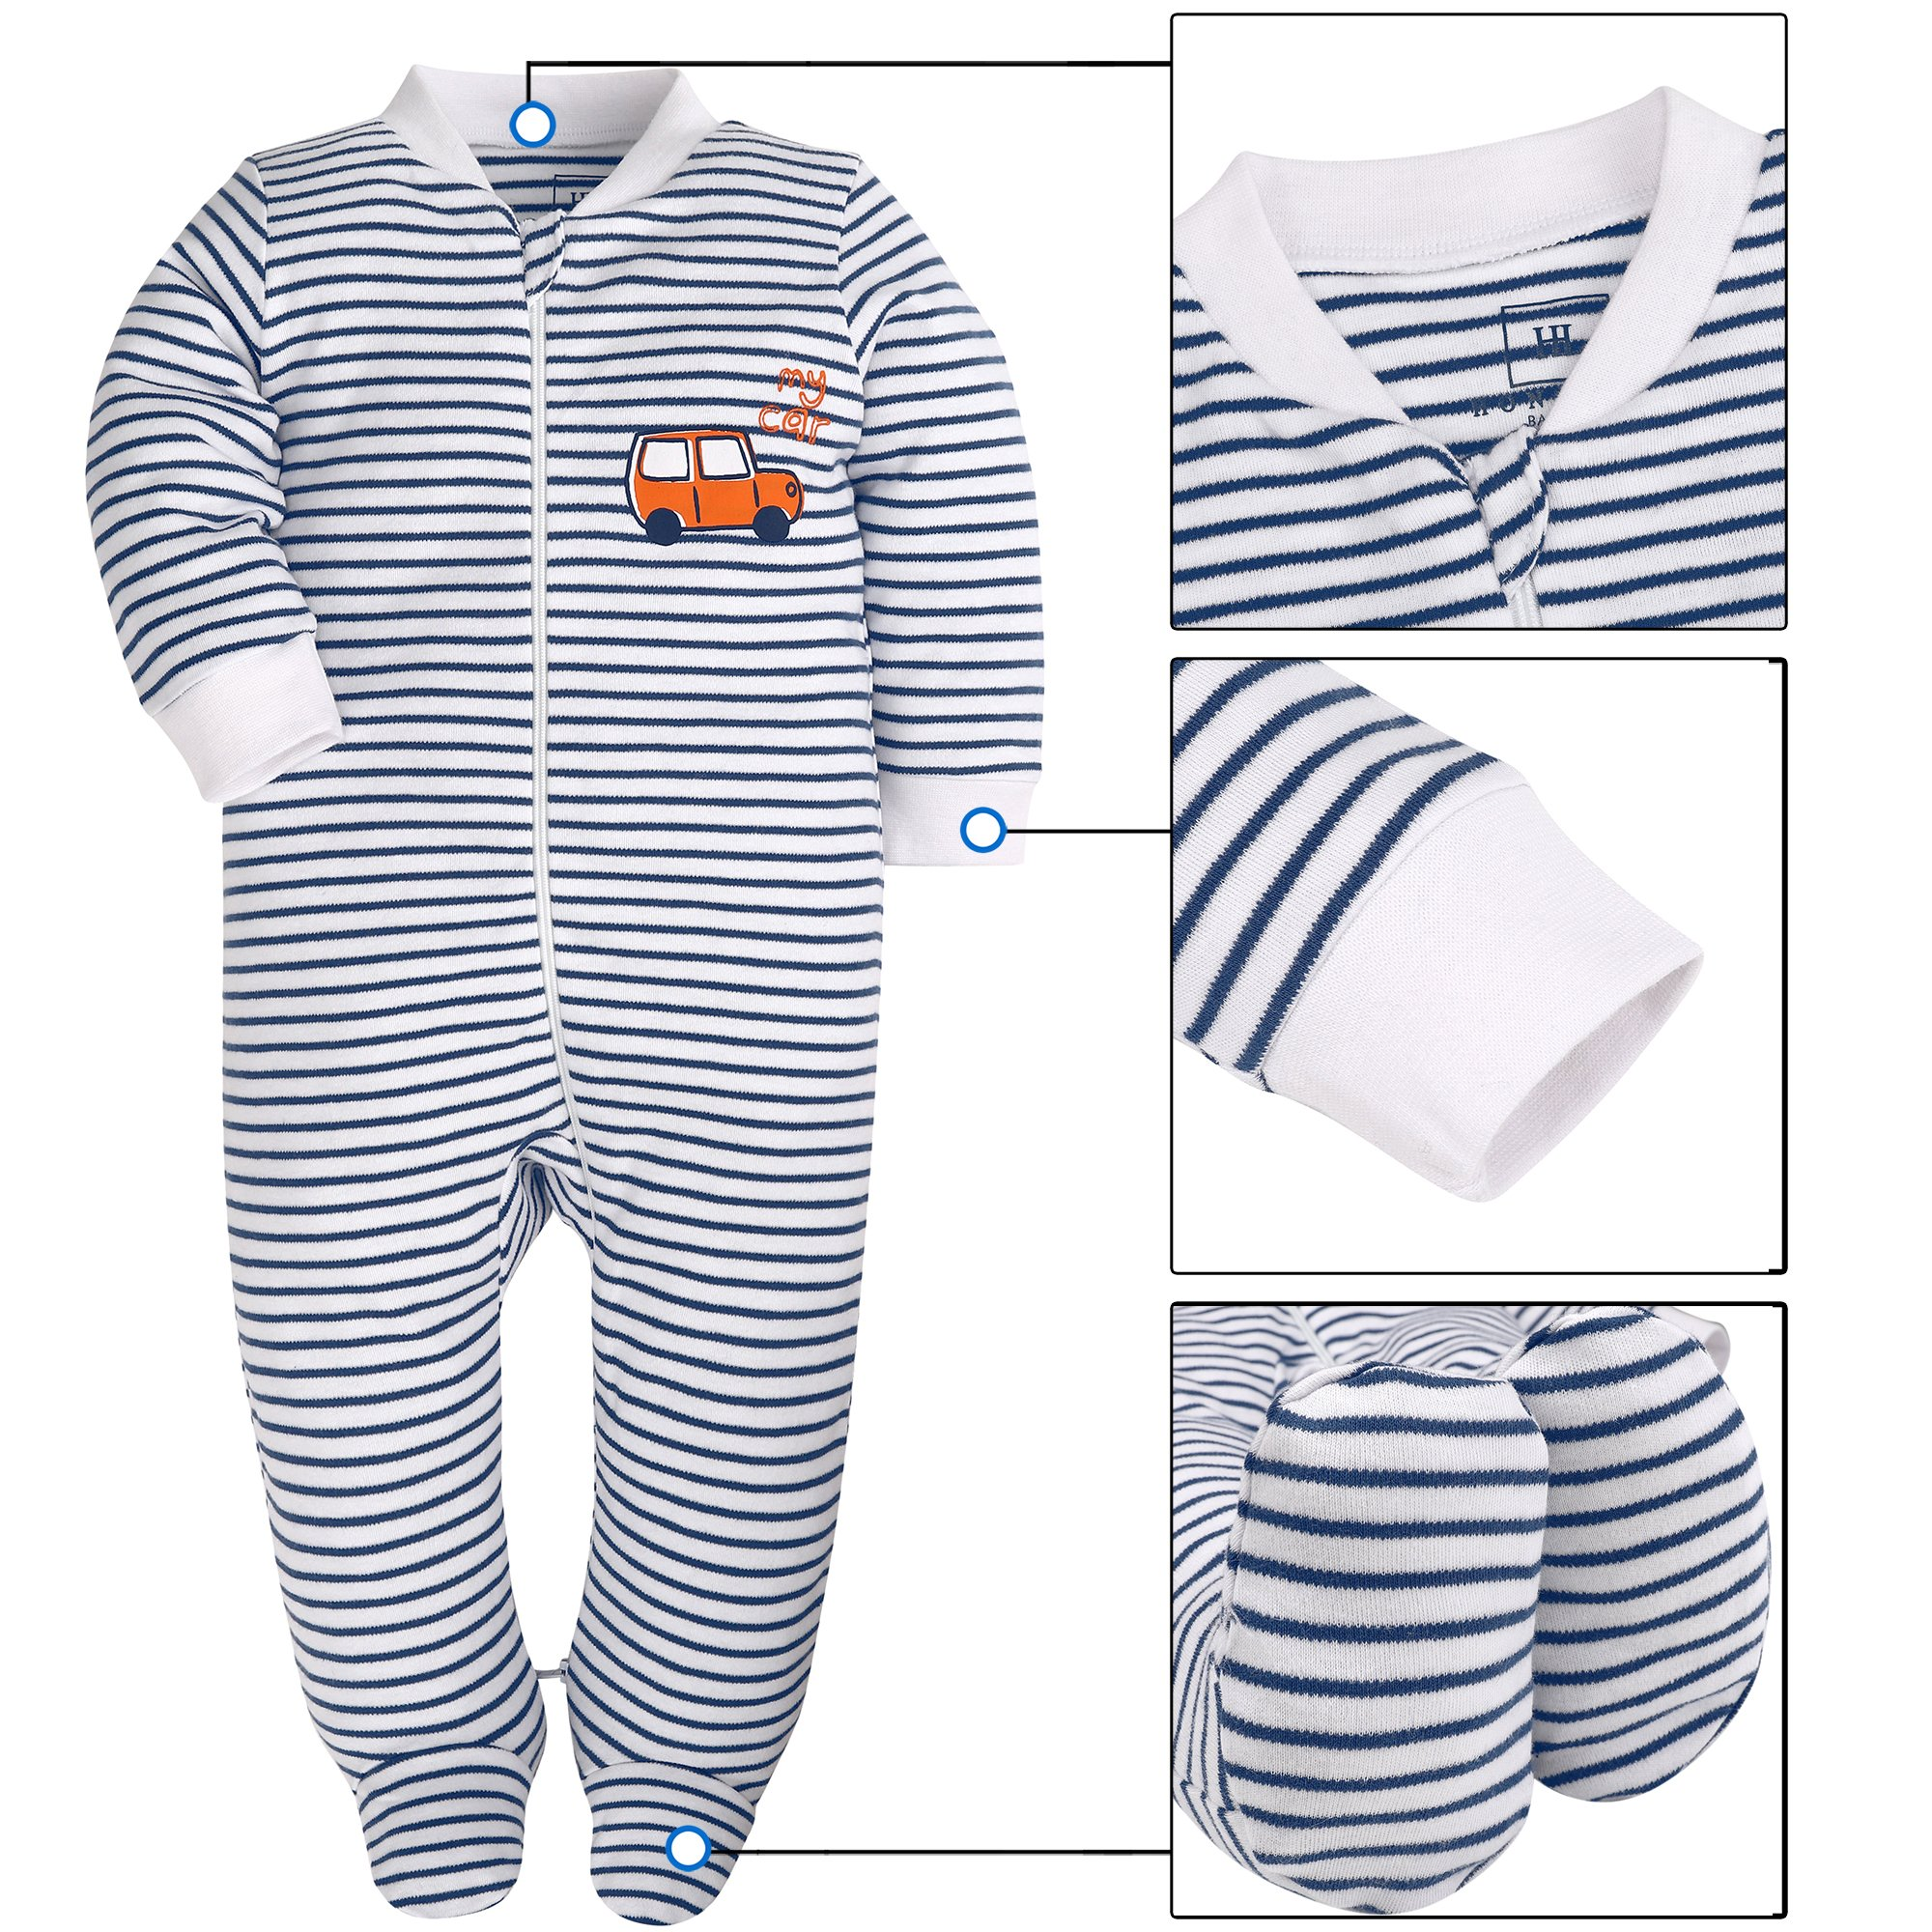 Baby Boys'2 Pack Footed Sleeper Yarn-Dyed Striped Baby Pajamas Set (Blue Dog/Grey Car, 18-24 Months) by SHENGWEN (Image #2)